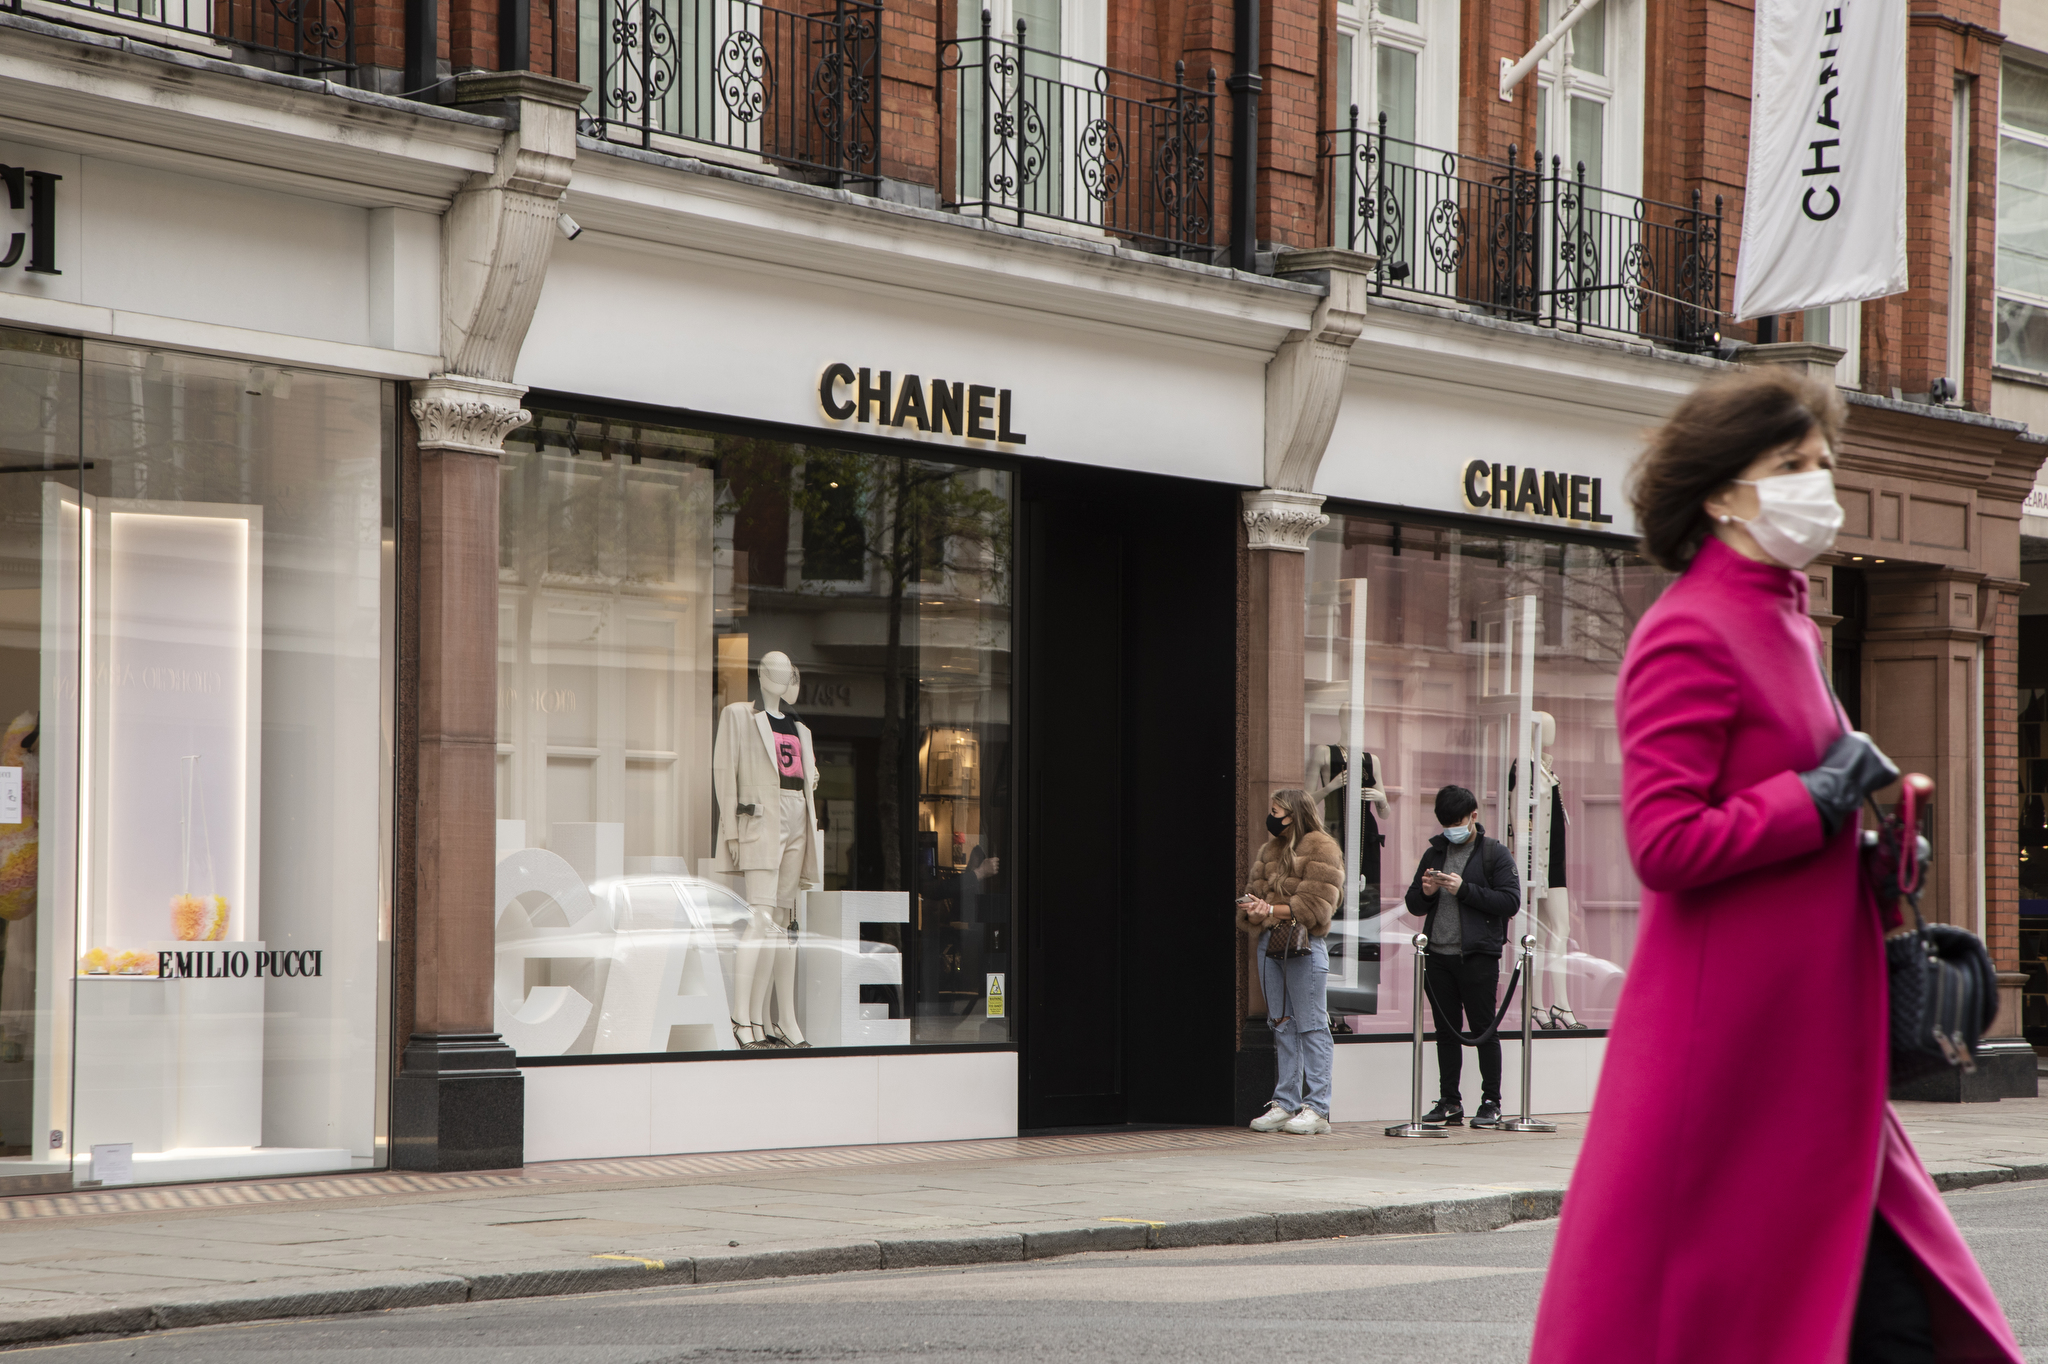 Chanel in London as the shops re-open.